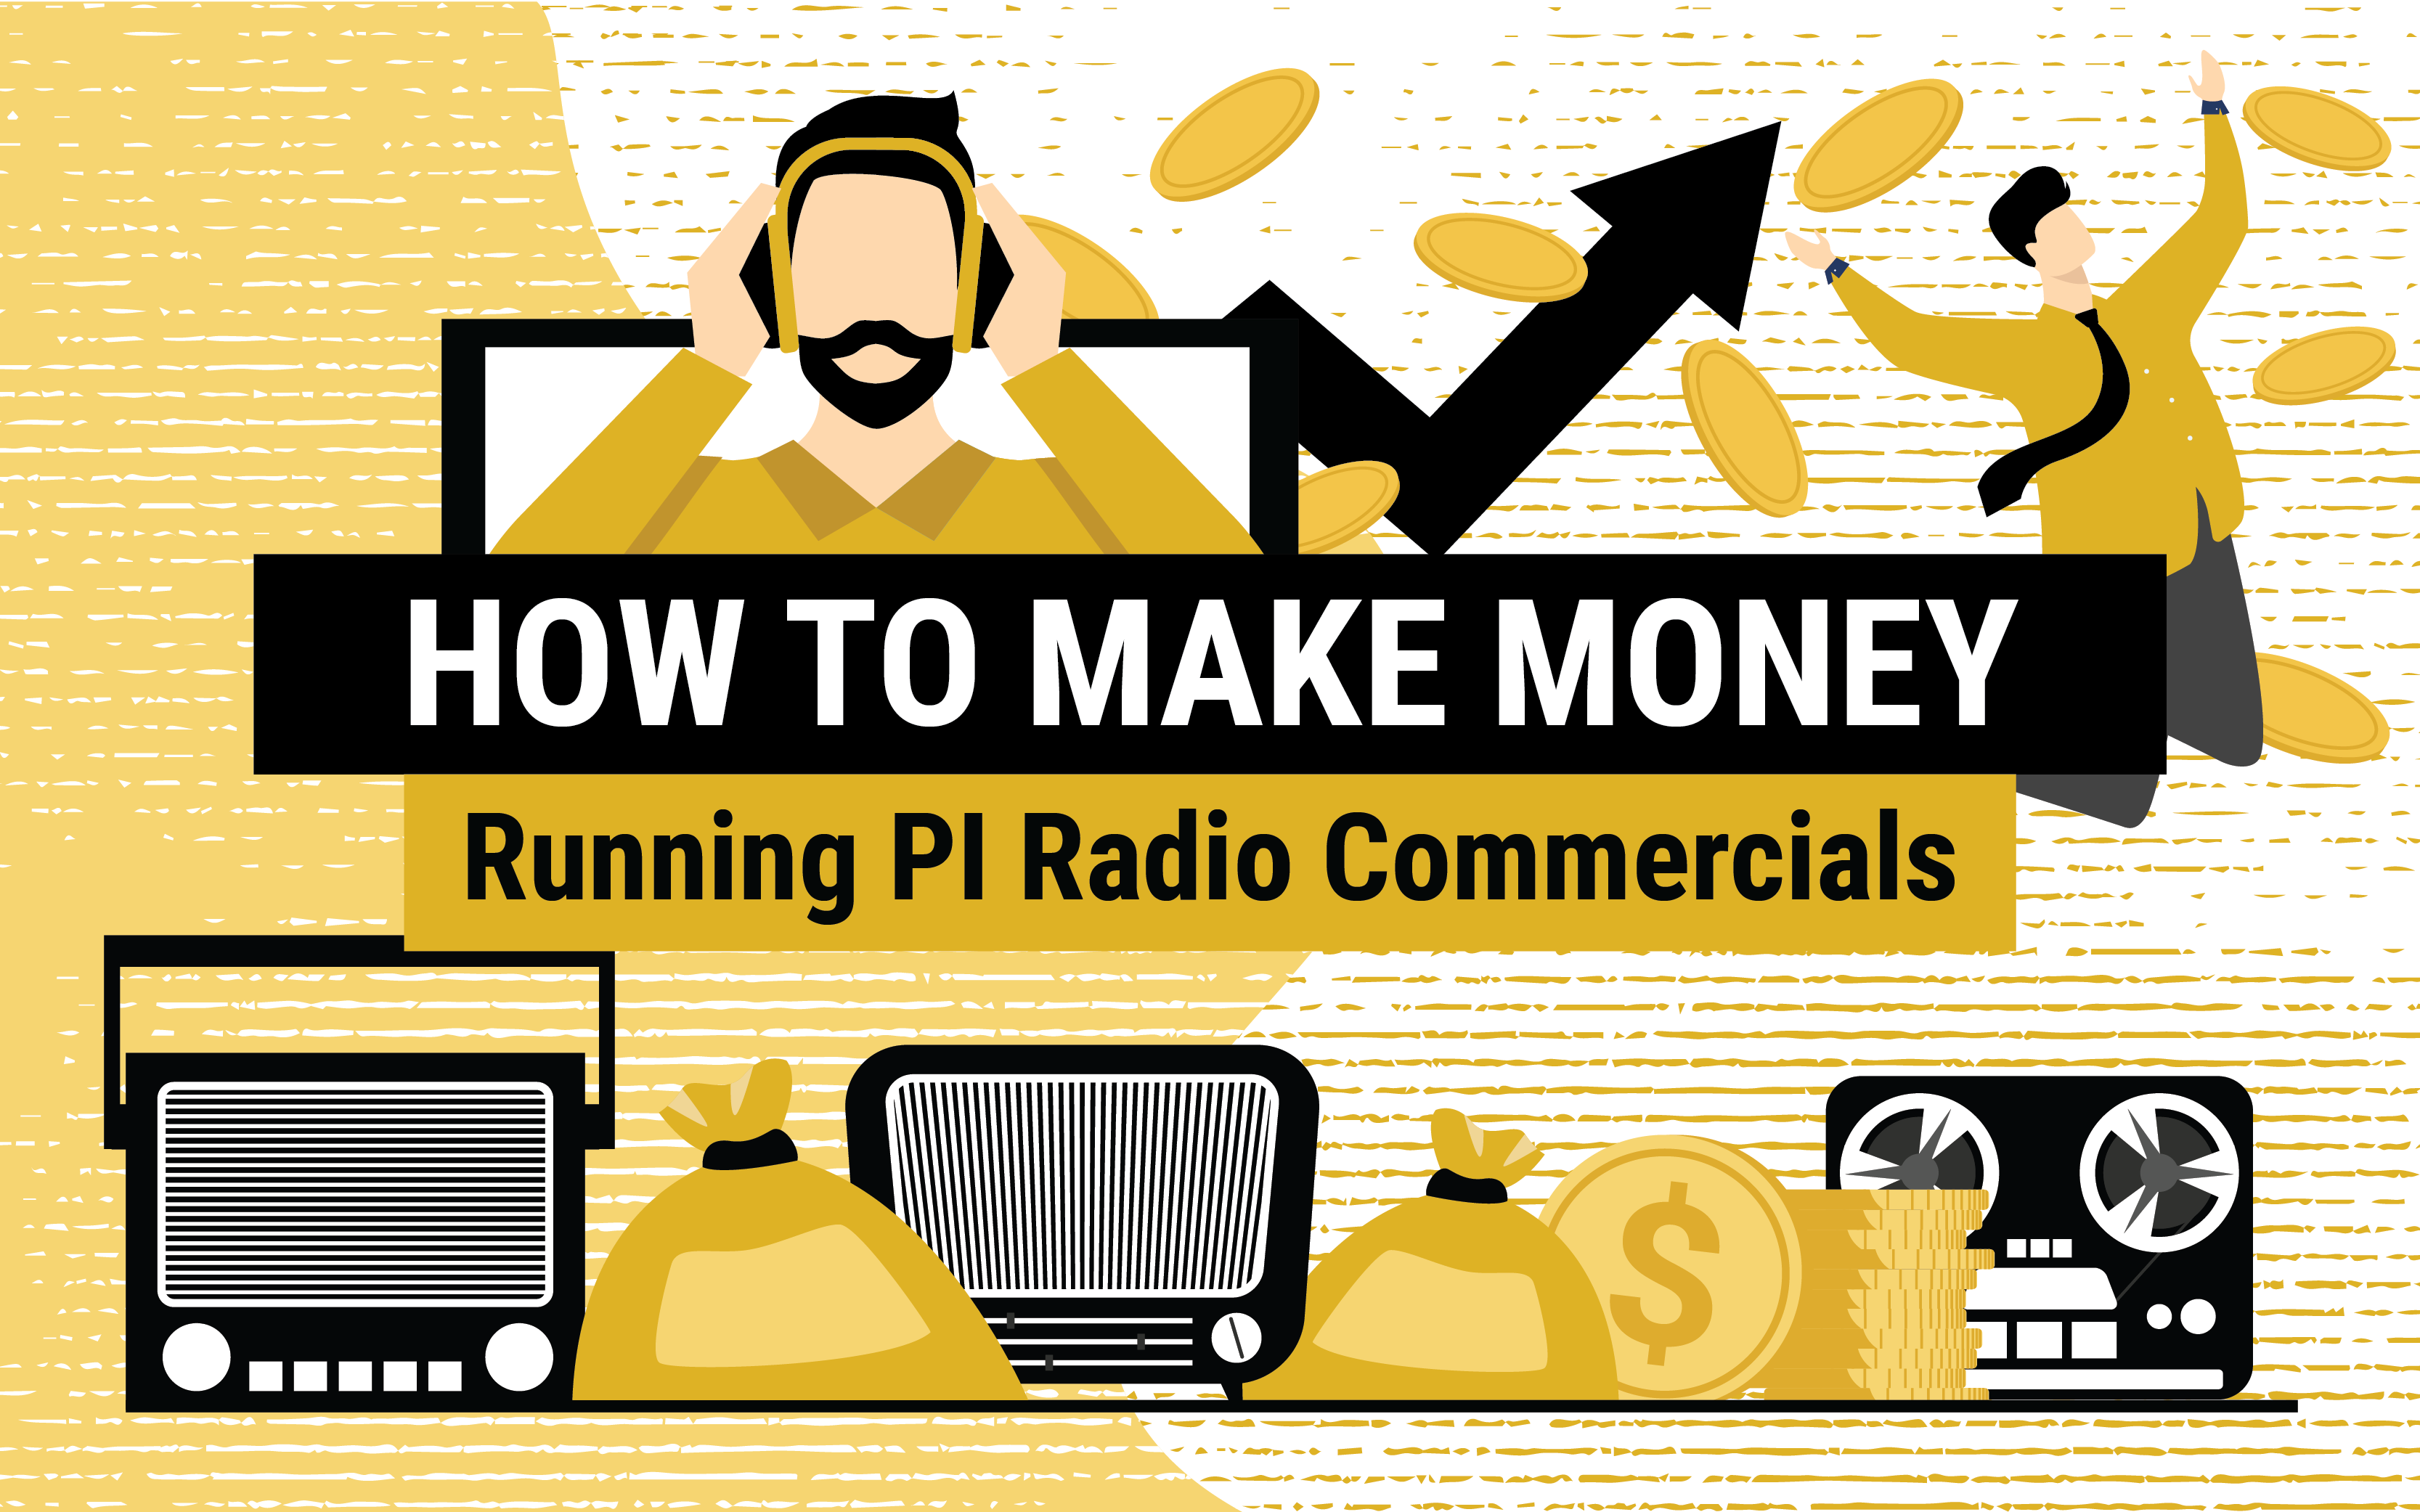 How To Make Money Running PI Radio Commercials